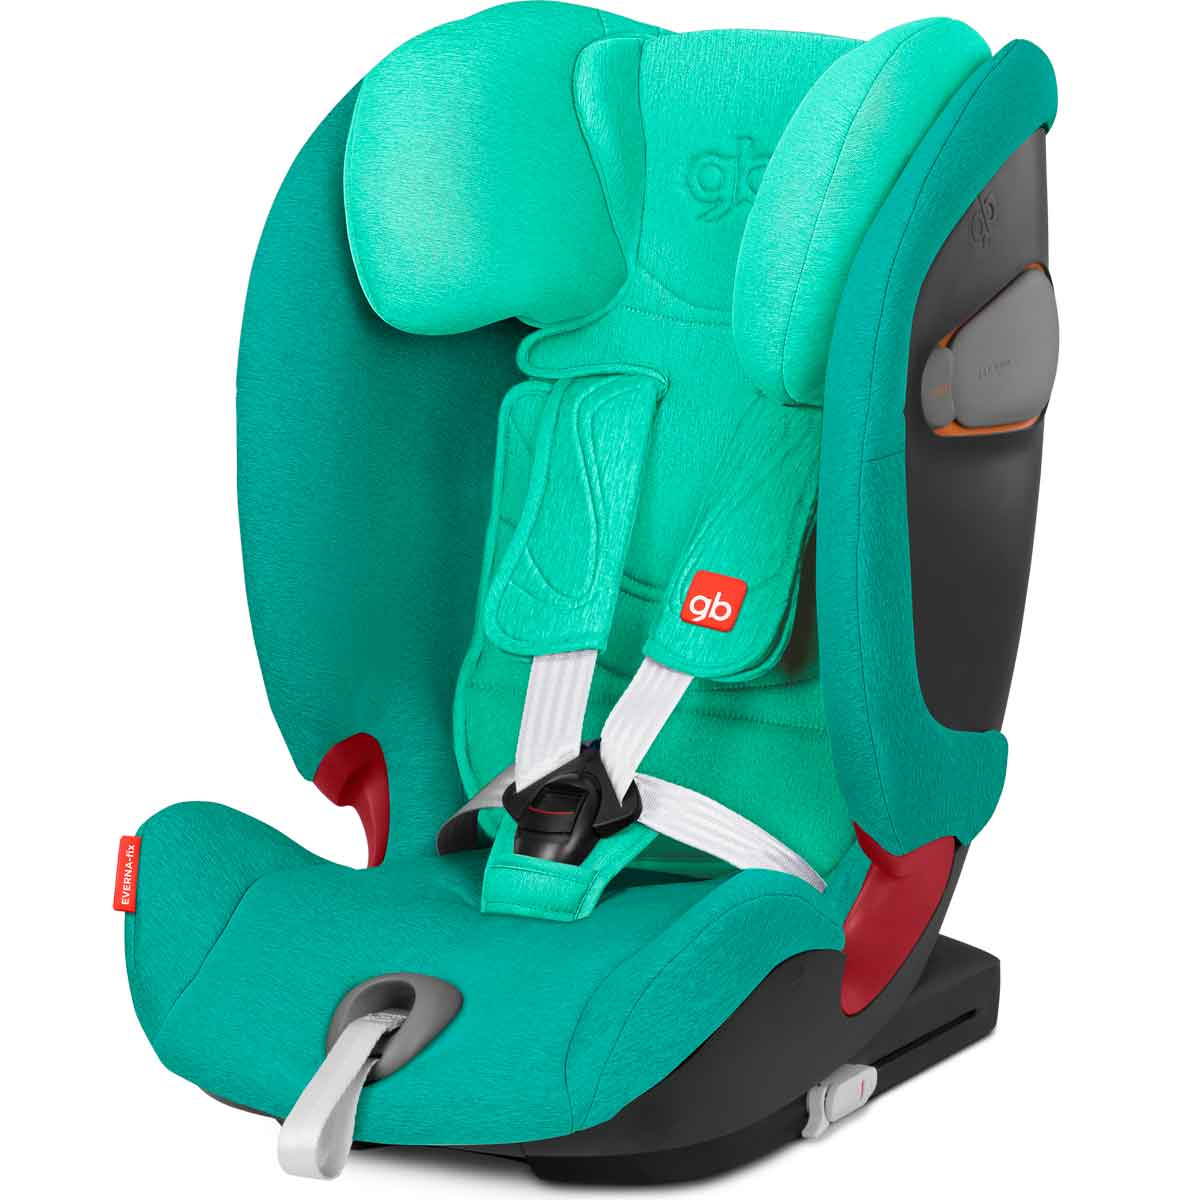 Silla de coche GB Everna fix Gr.1-2-3